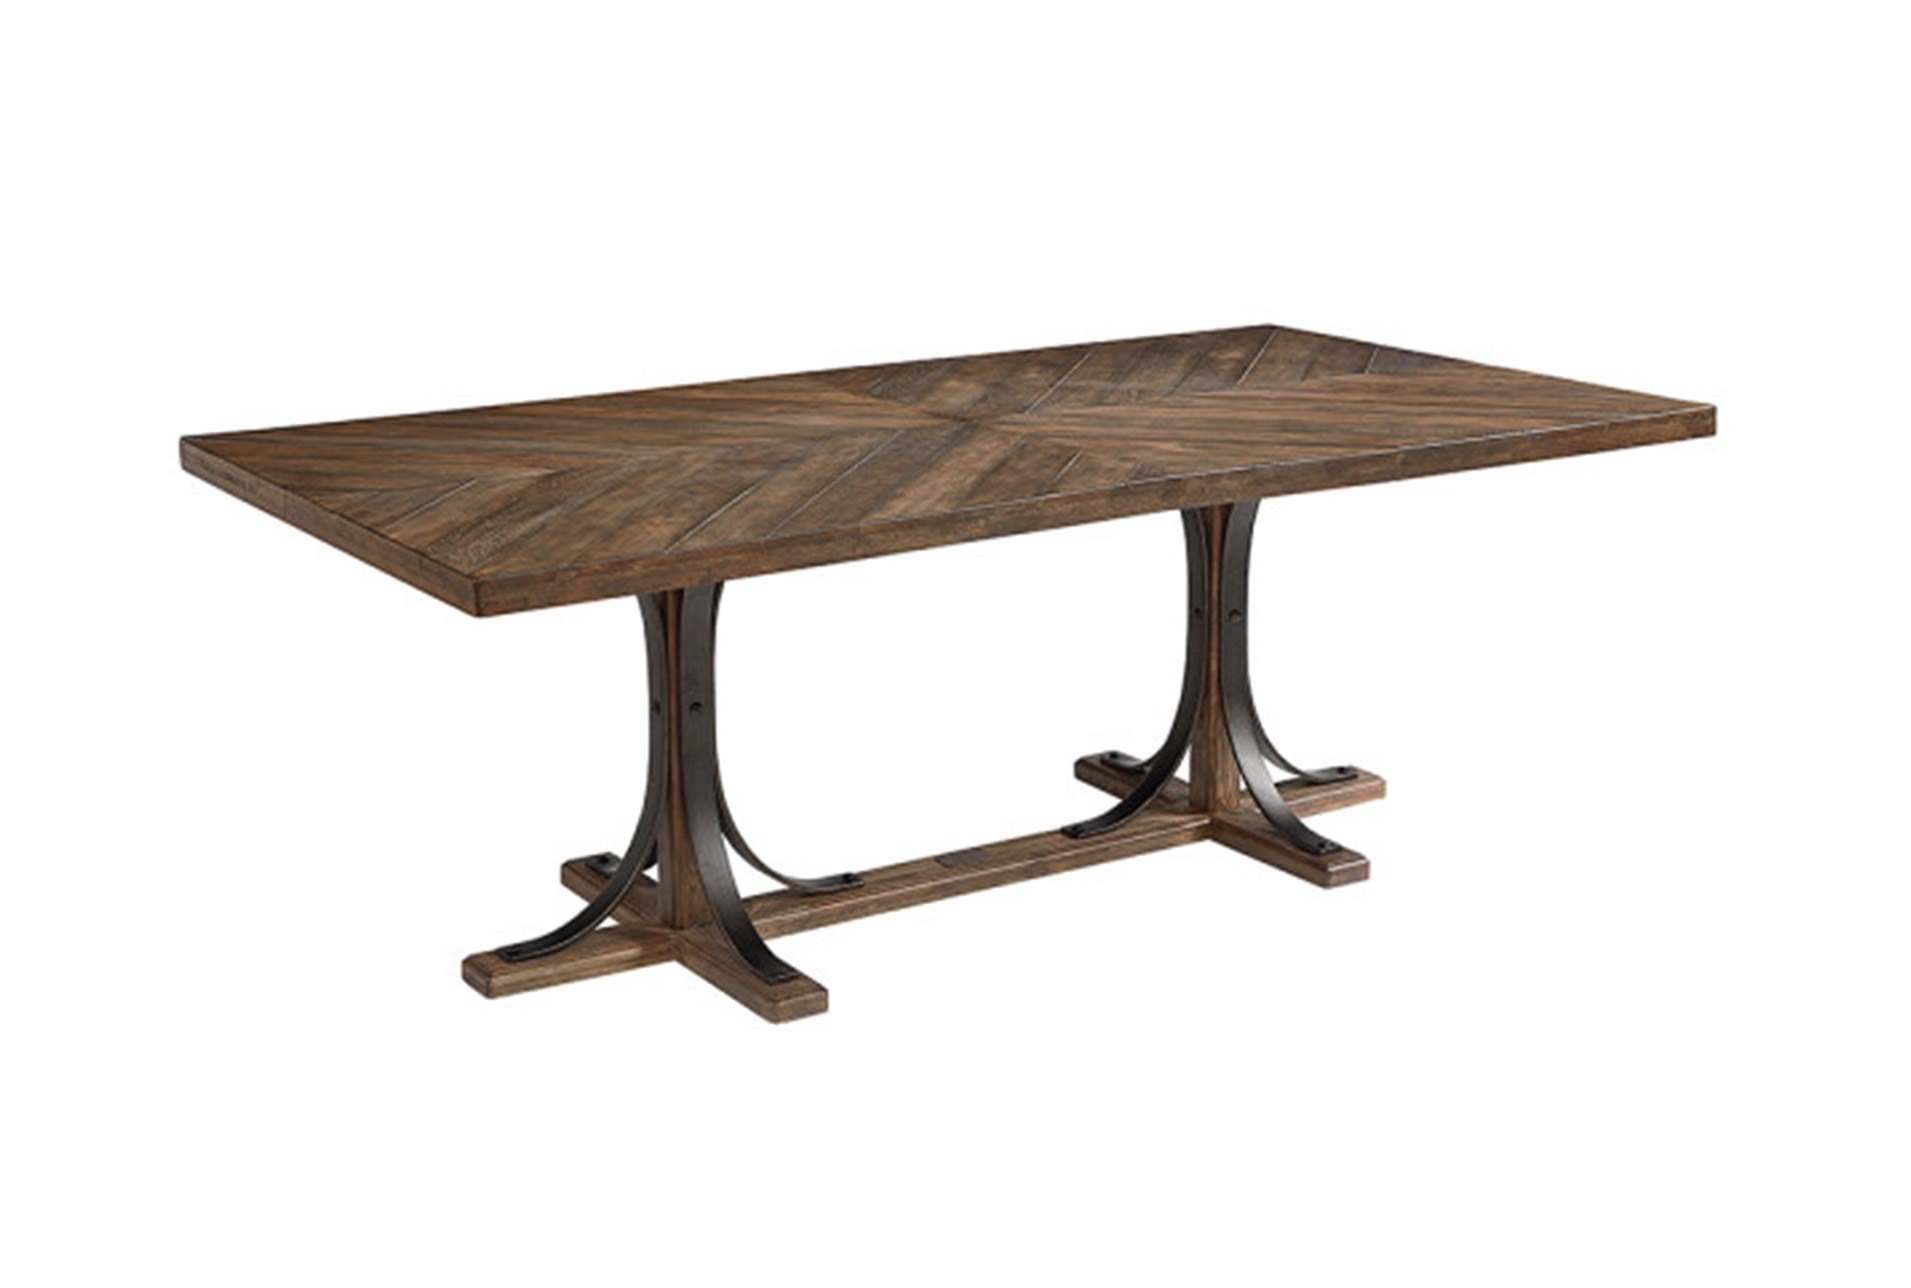 Magnolia home shop floor dining table with iron trestle by joanna gaines qty 1 has been successfully added to your cart